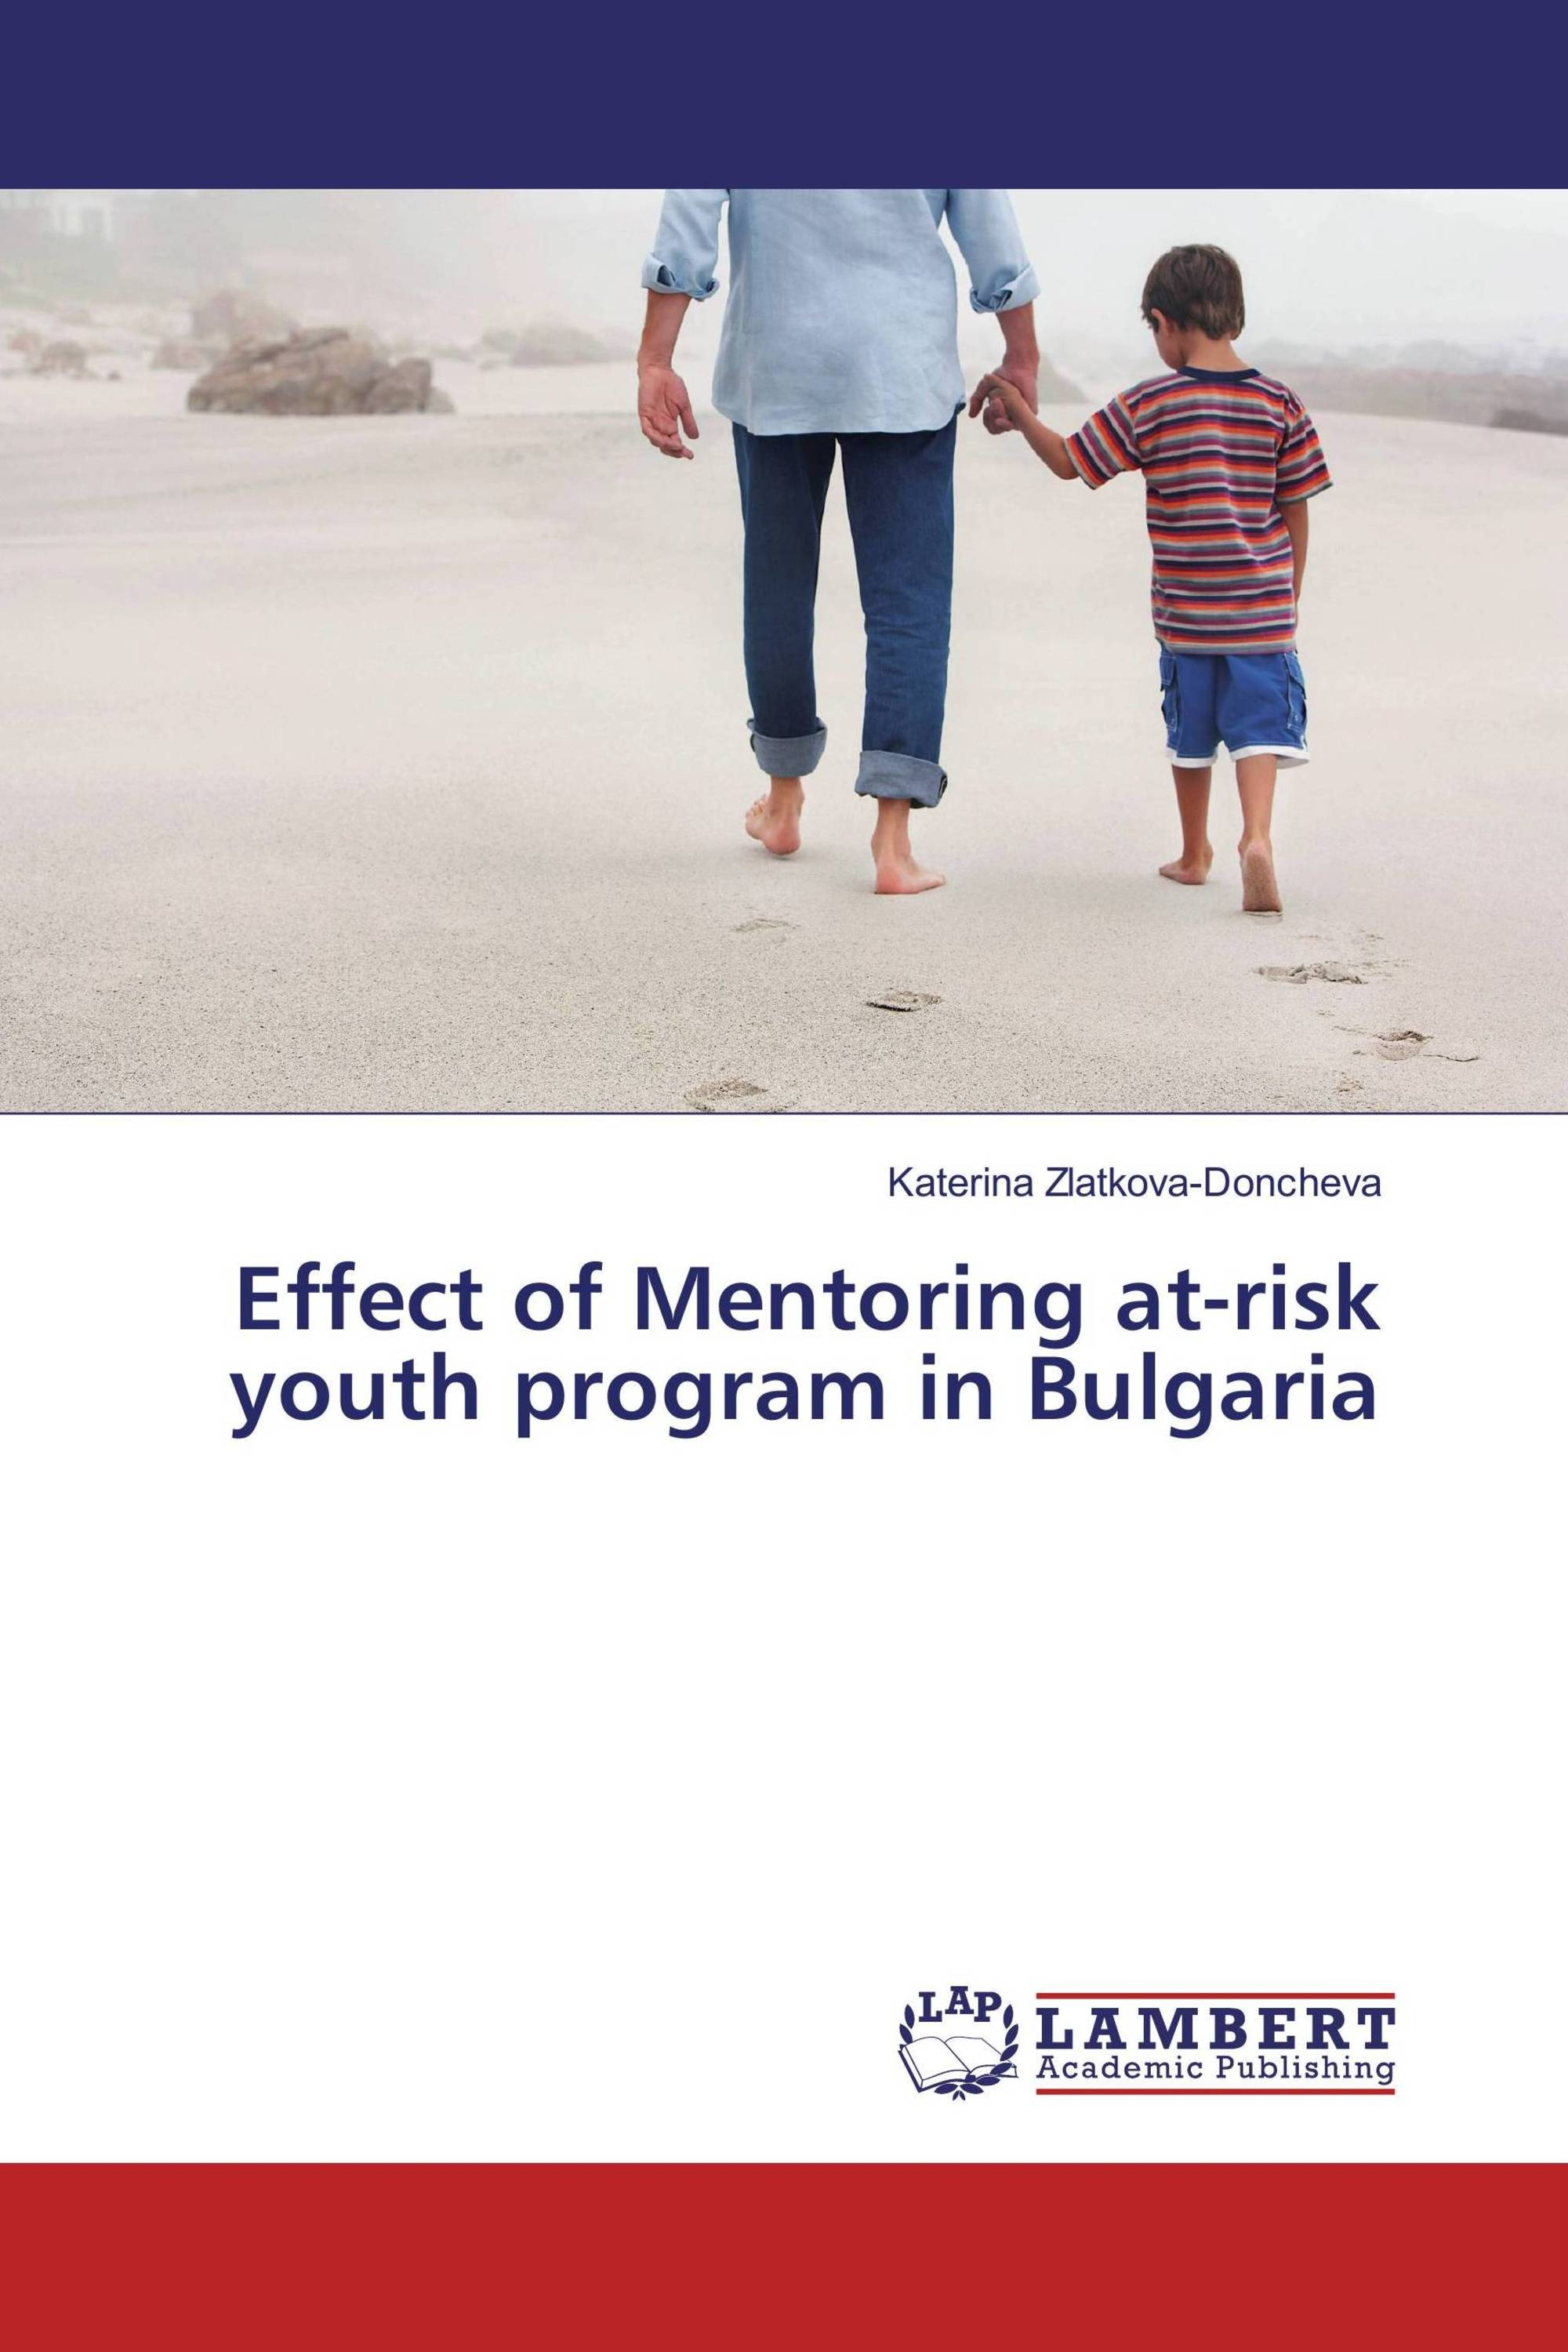 Effect of Mentoring at-risk youth program in Bulgaria